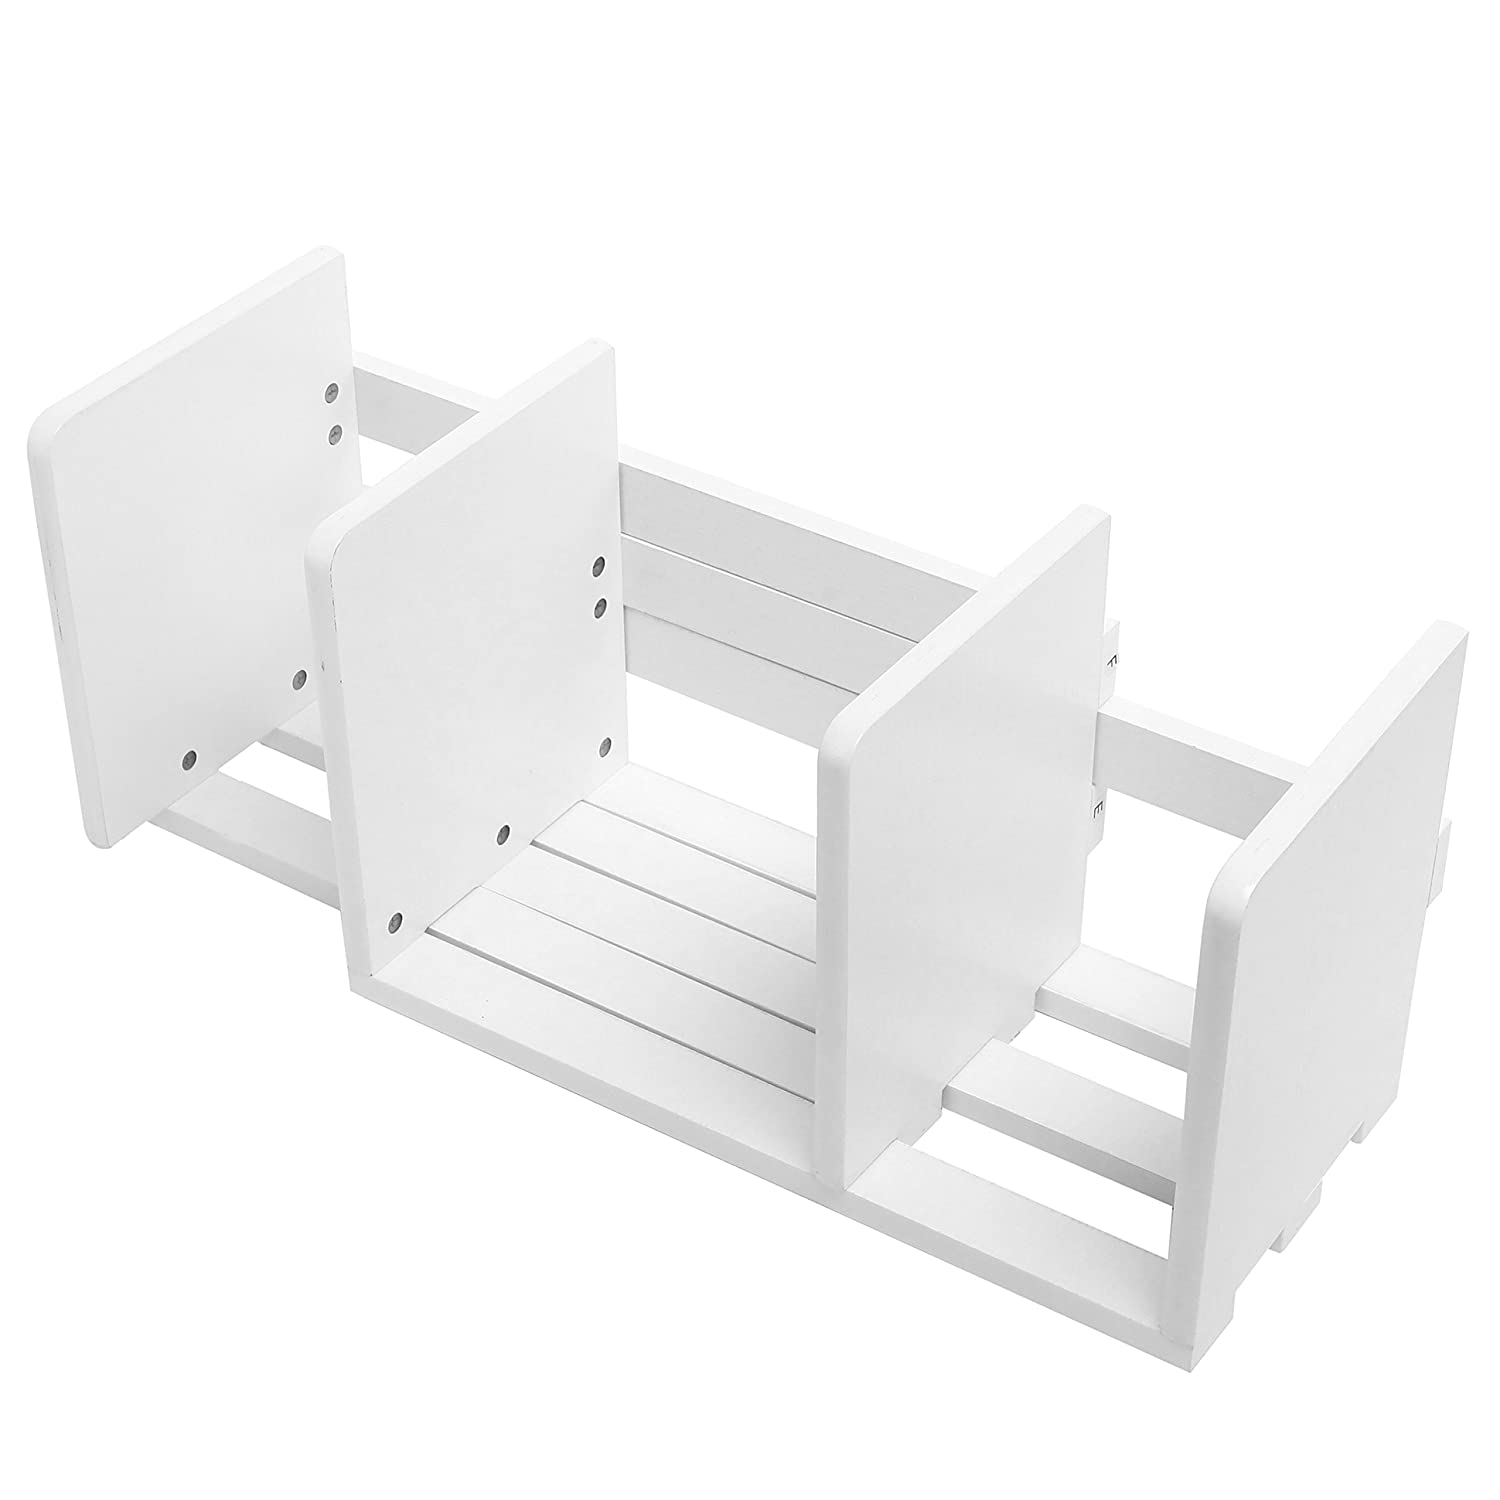 Expandable Wood Desktop Bookshelf/Adjustable Storage Organizer Display Shelf Rack, White